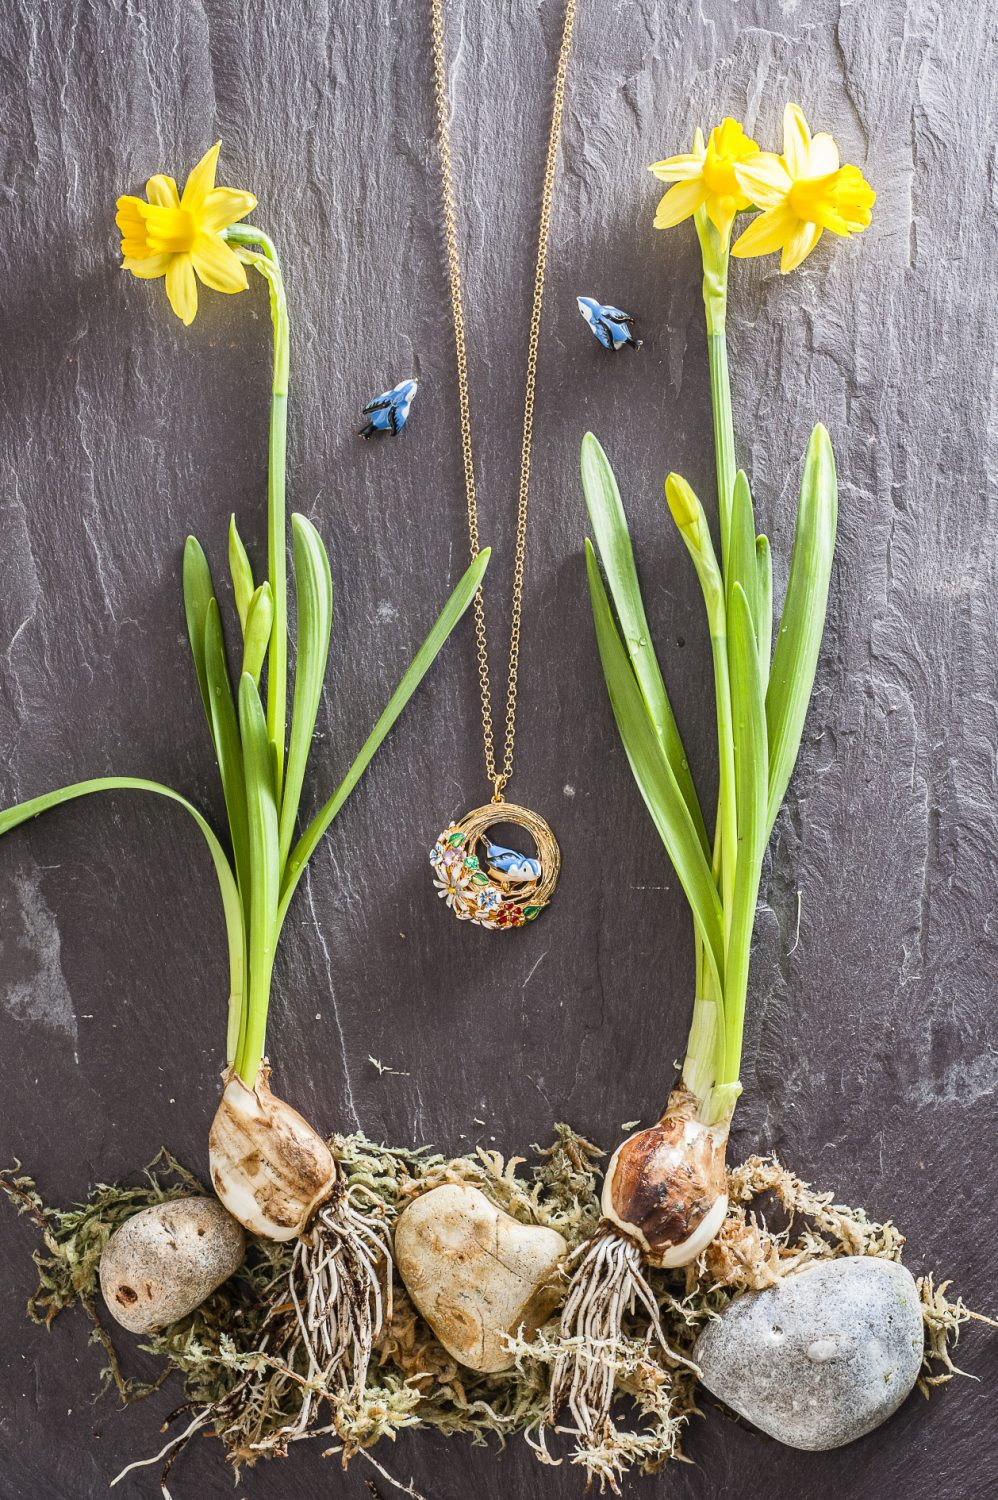 Hedgerow bird nest necklace, £75, Hedgerow bluebird stud earrings, £40, Bill Skinner Studio, Otford 01959 526254 / Tenterden 01580 761610 www.billskinnerstudio.co.uk